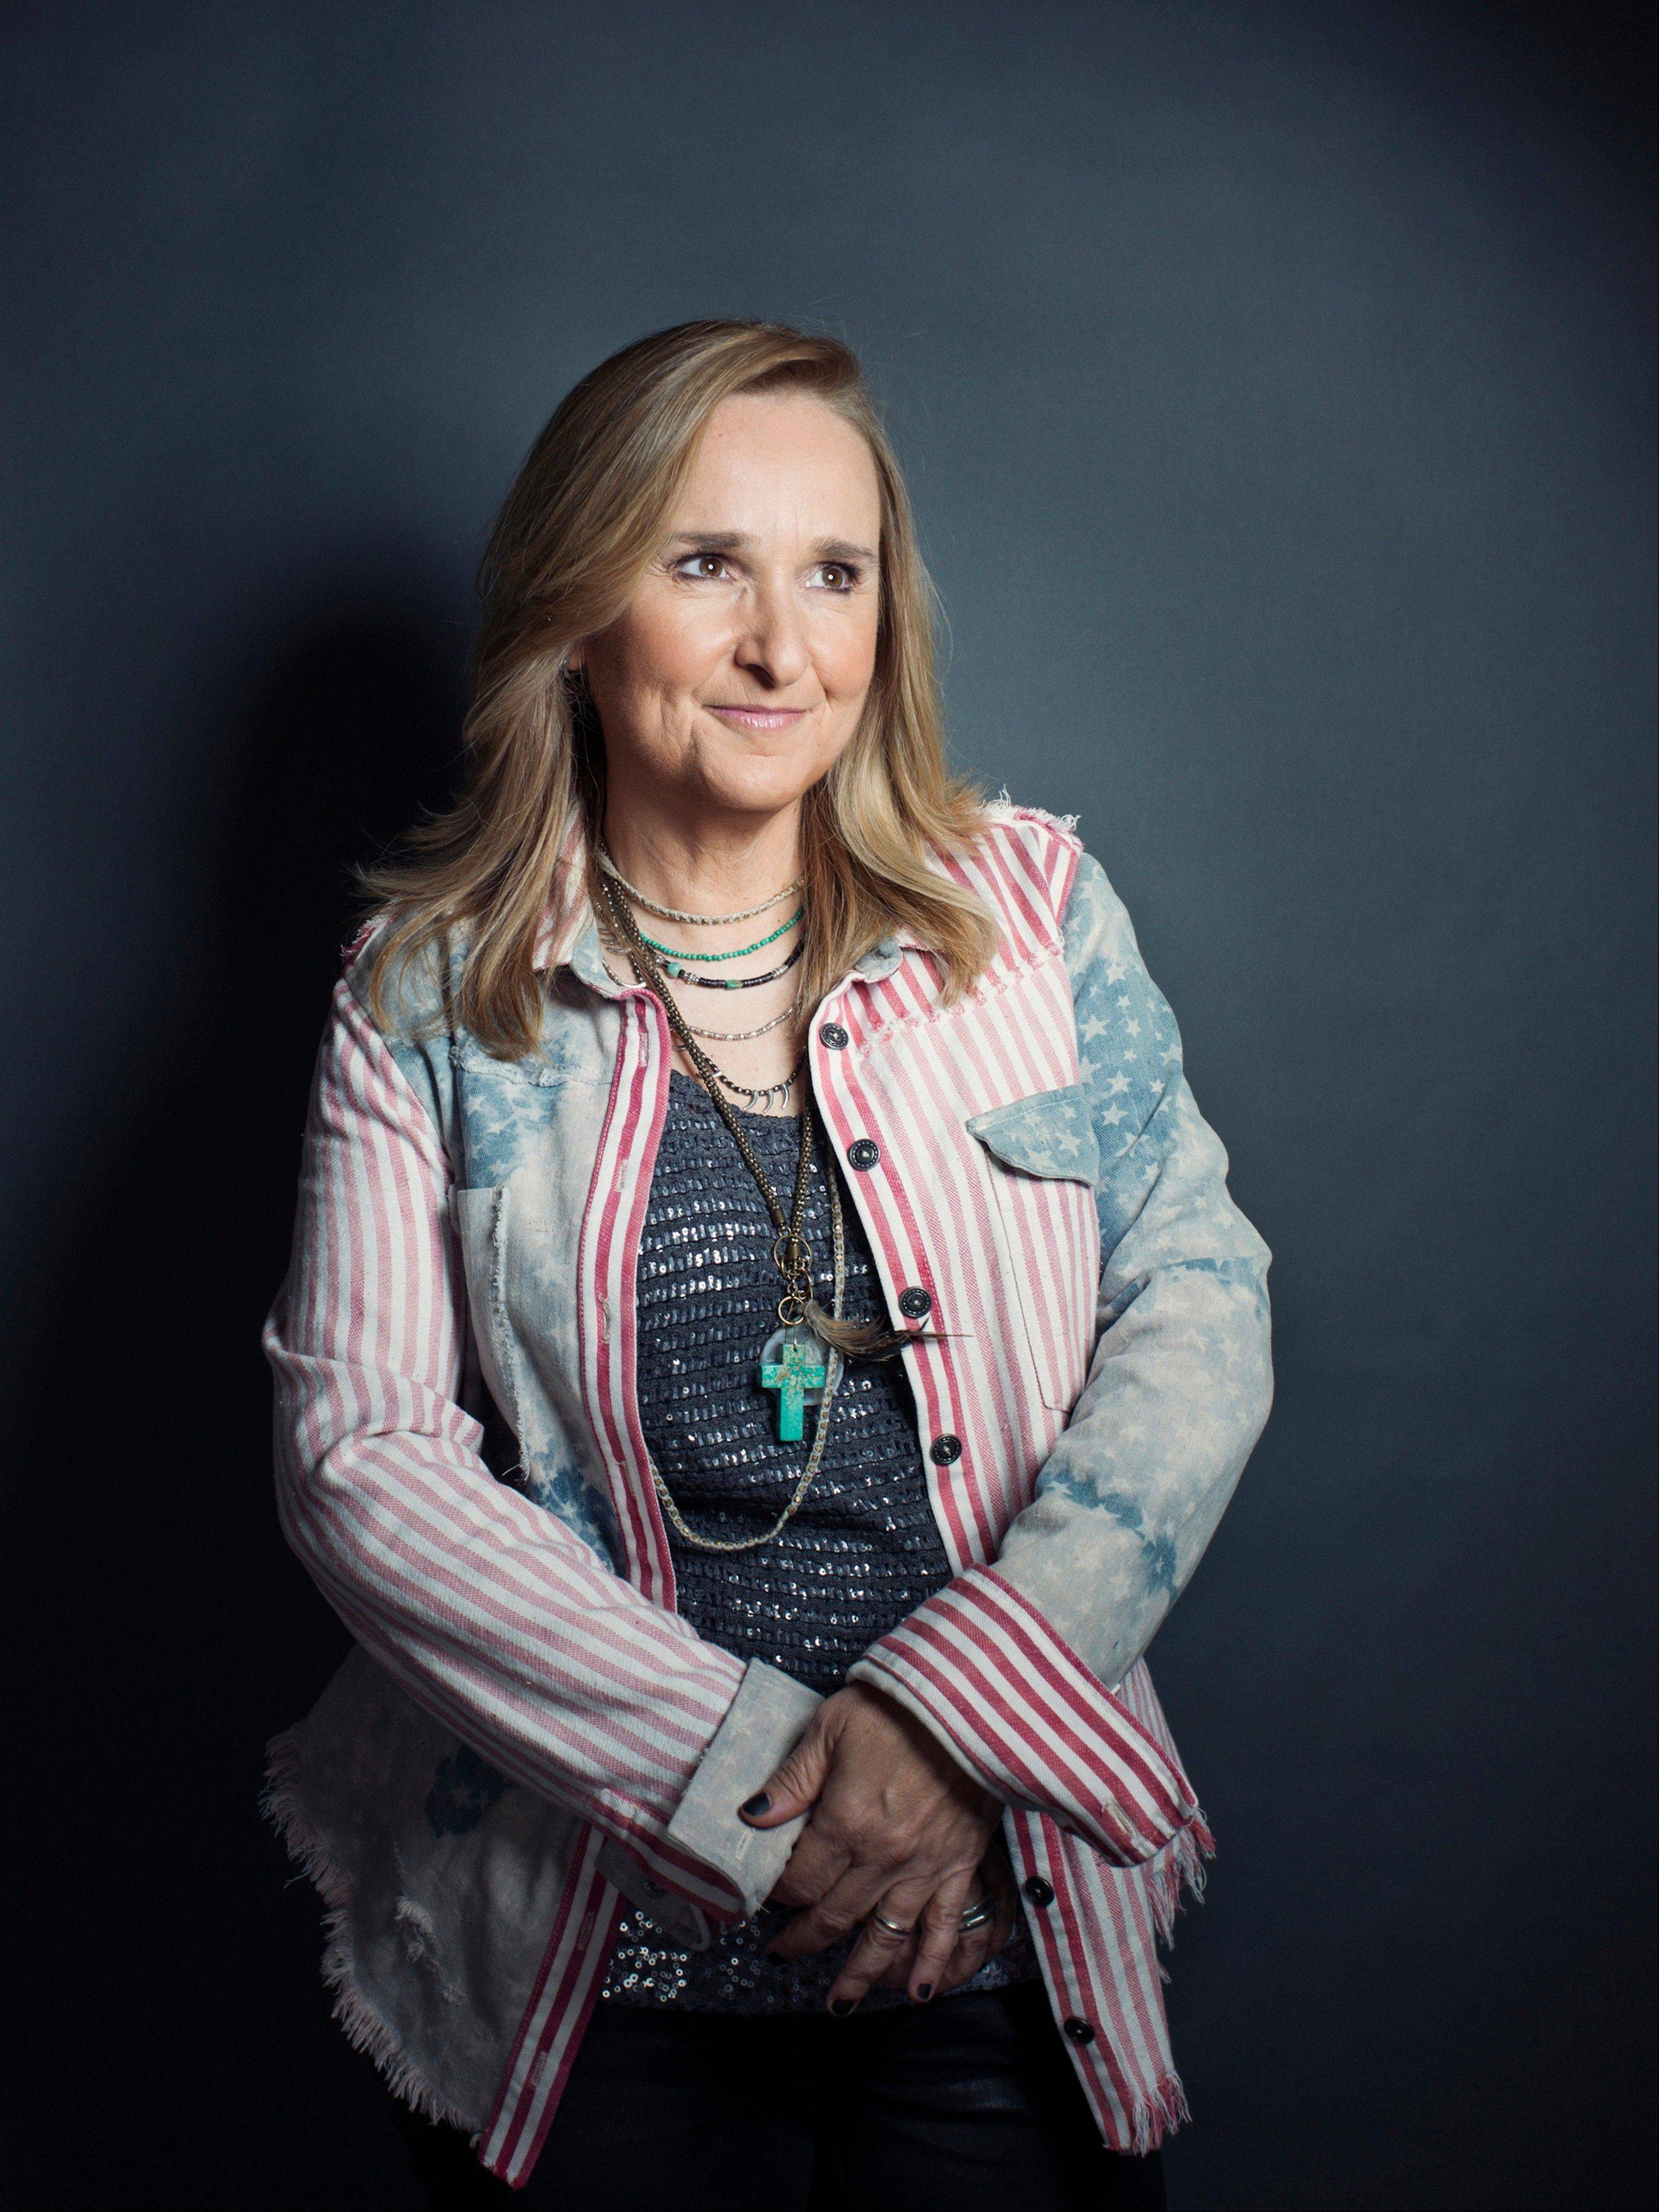 Melissa Etheridge is set to perform at the Chicago Theatre on Saturday, Nov. 10, with her 4th Street Feeling Tour.